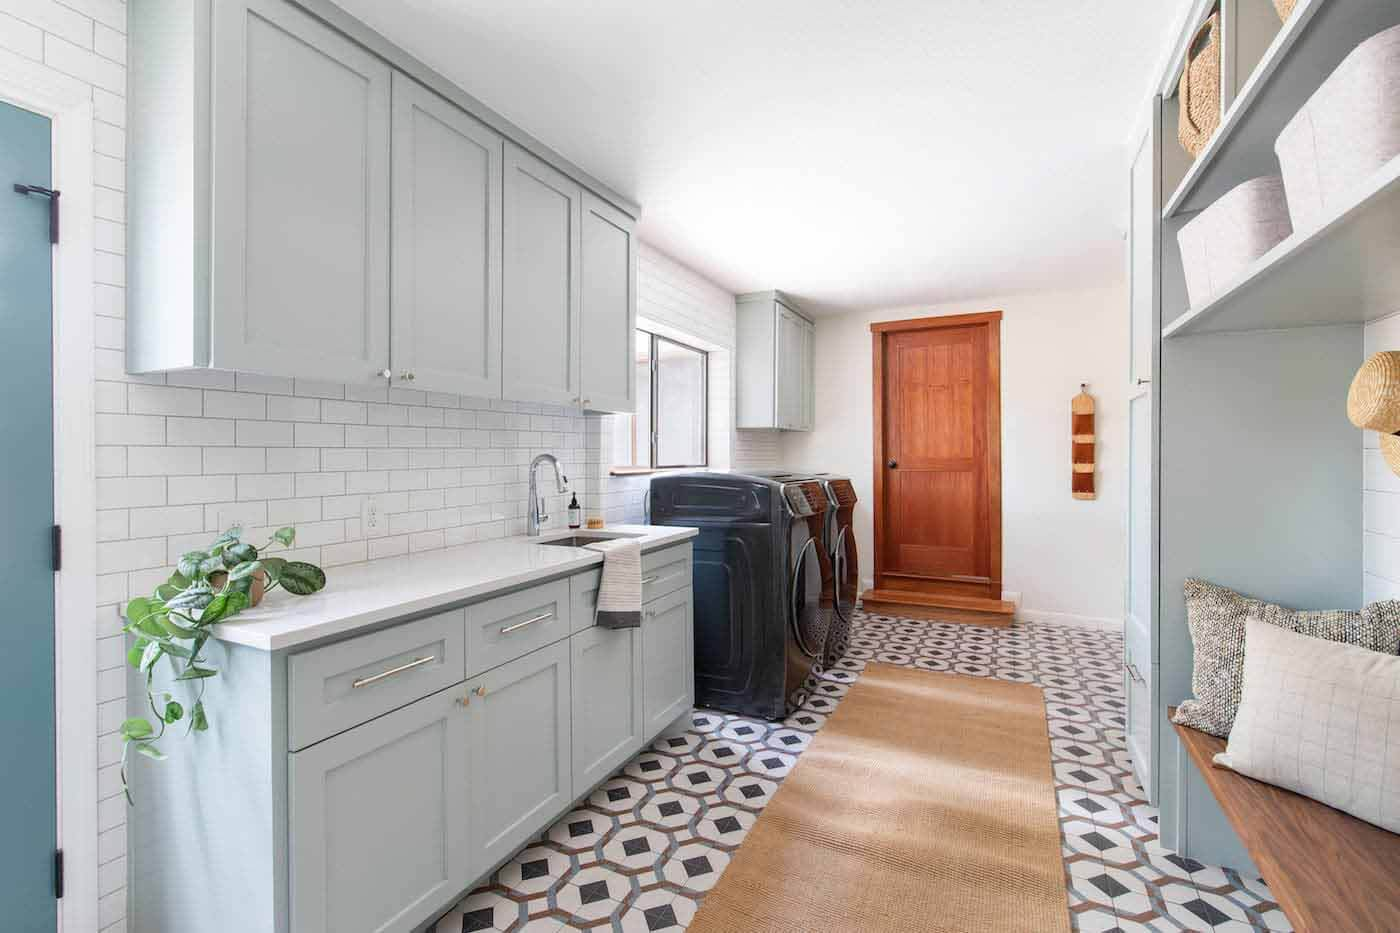 Laundry room designed by Sarah Stacey